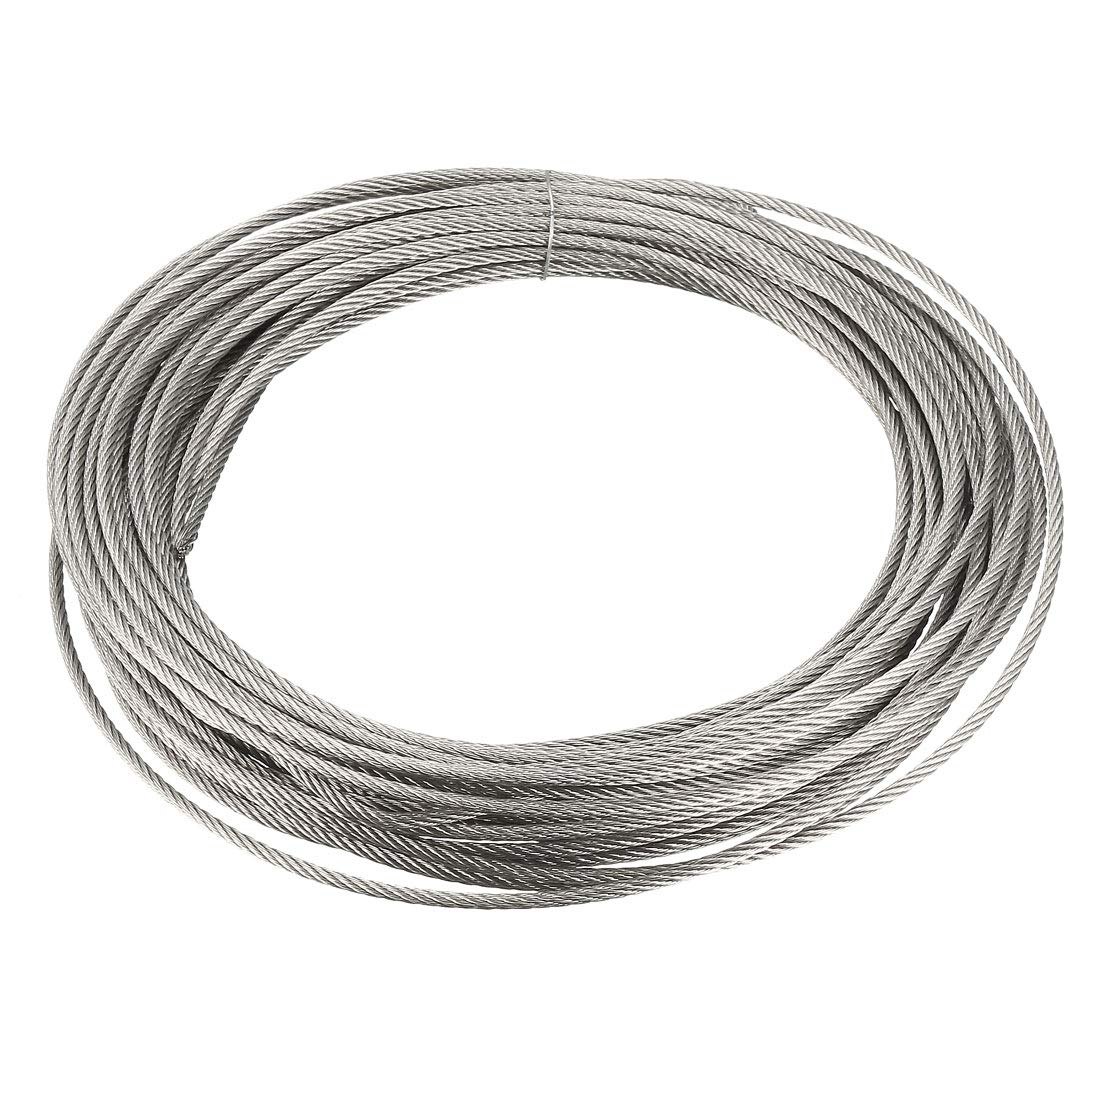 uxcell/® Stainless Steel Wire Rope Cable 1.3mm 0.05 inch Dia 190.3ft 58m Length 17 Gauge 304 Grade for Hoist Lifting Grinder Pulley Wheel